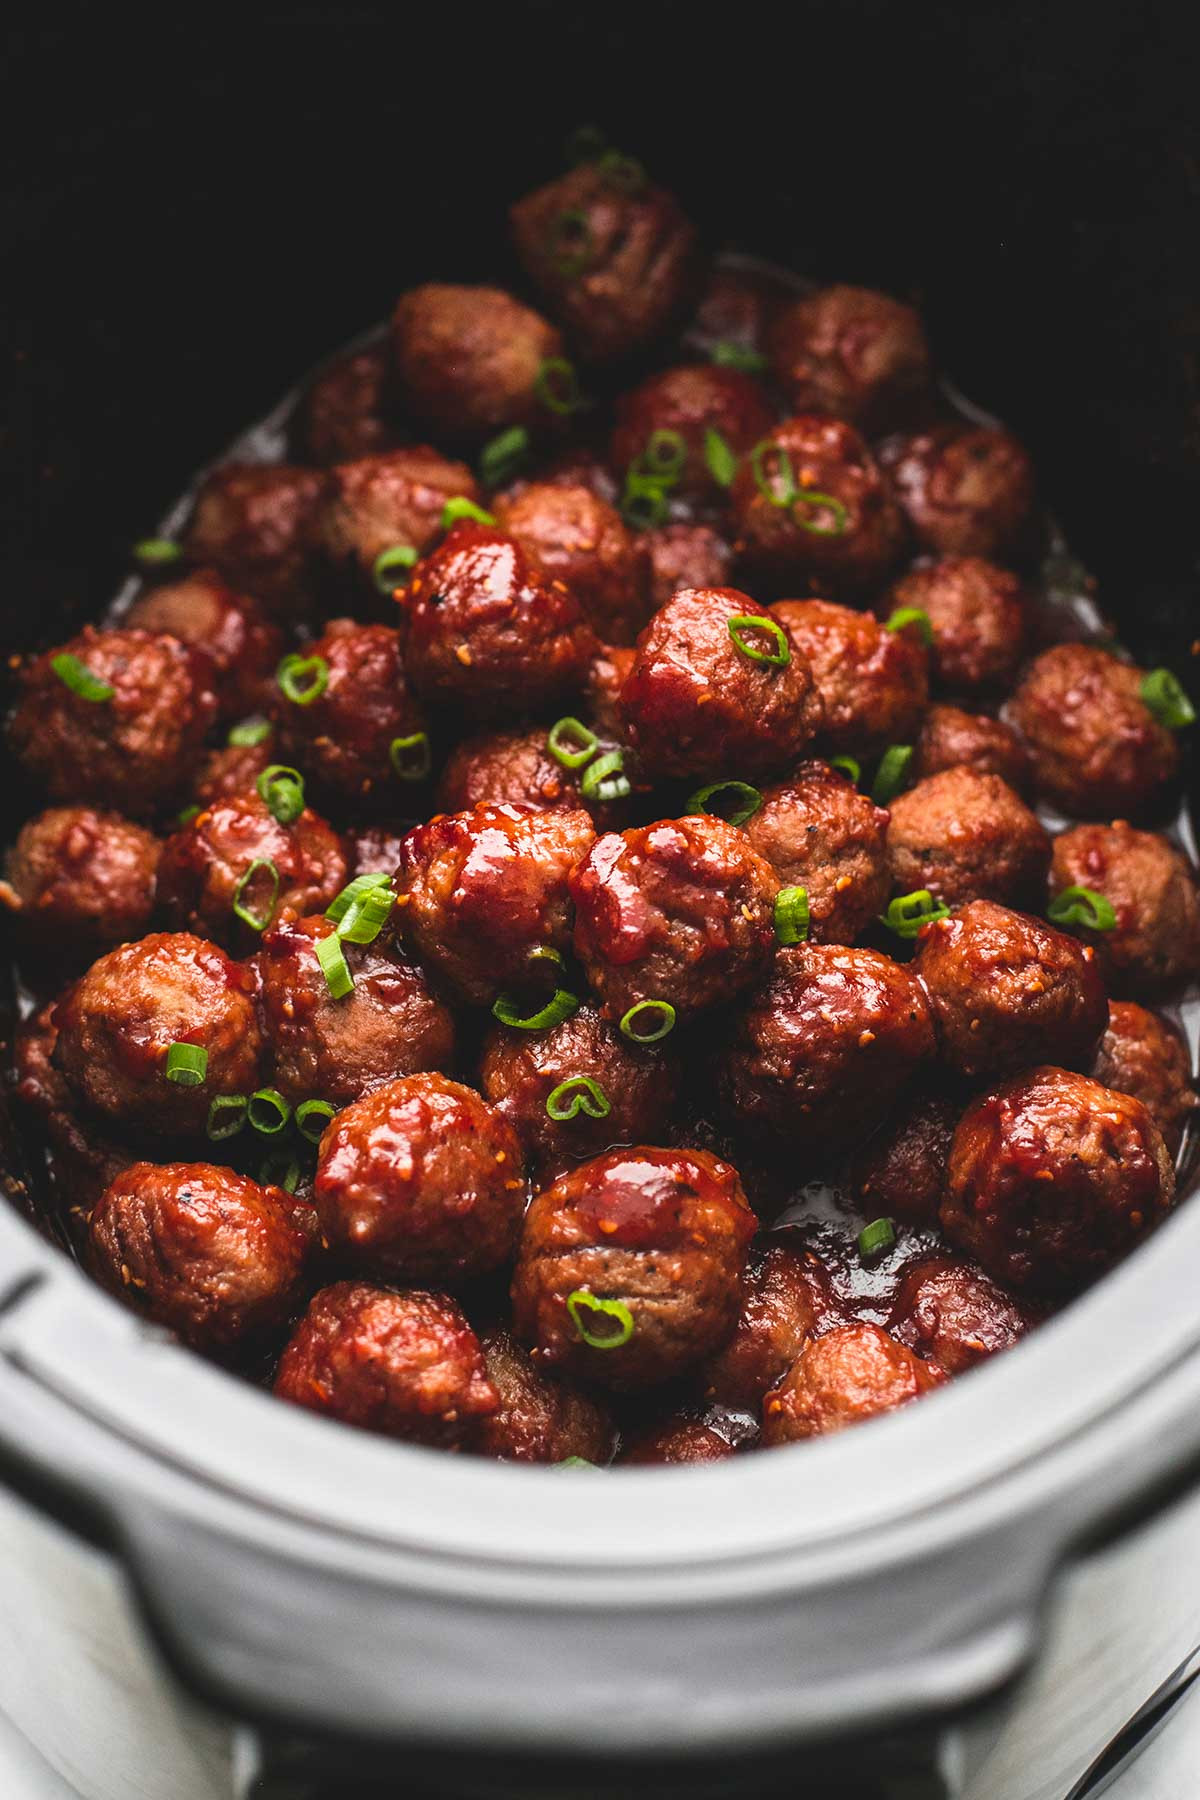 14 Easy Slow Cooker Appetizers  3 Ingre nt Slow Cooker Sweet n Spicy Party Meatballs